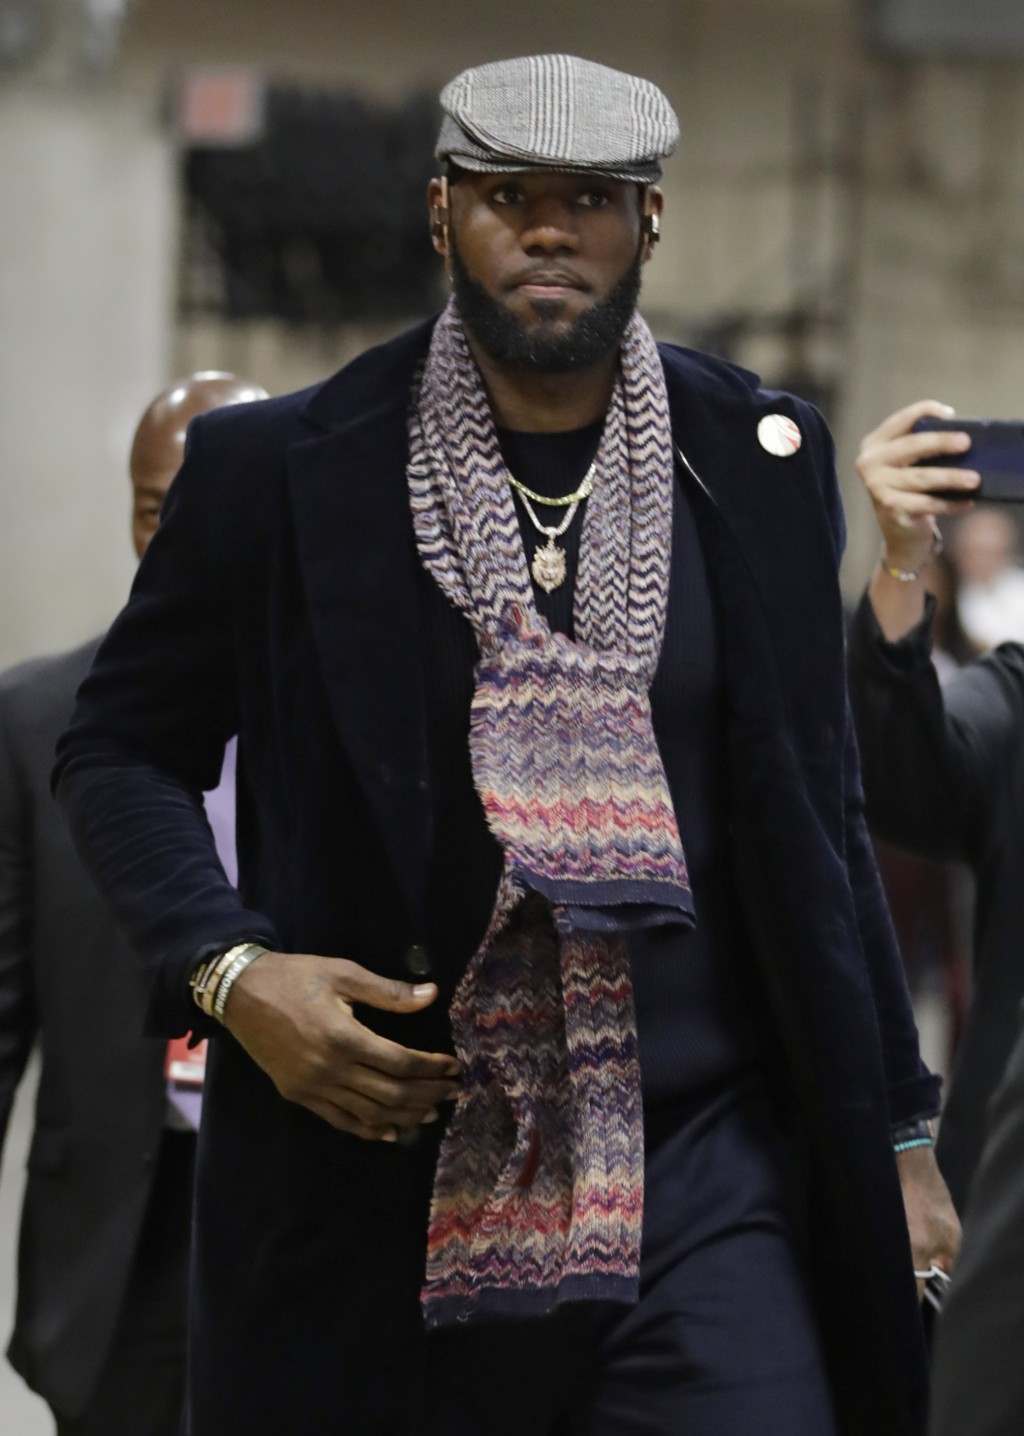 Los Angeles Lakers' LeBron James enters the arena before an NBA basketball game against the Cleveland Cavaliers, Wednesday, Nov. 21, 2018, in Clevelan